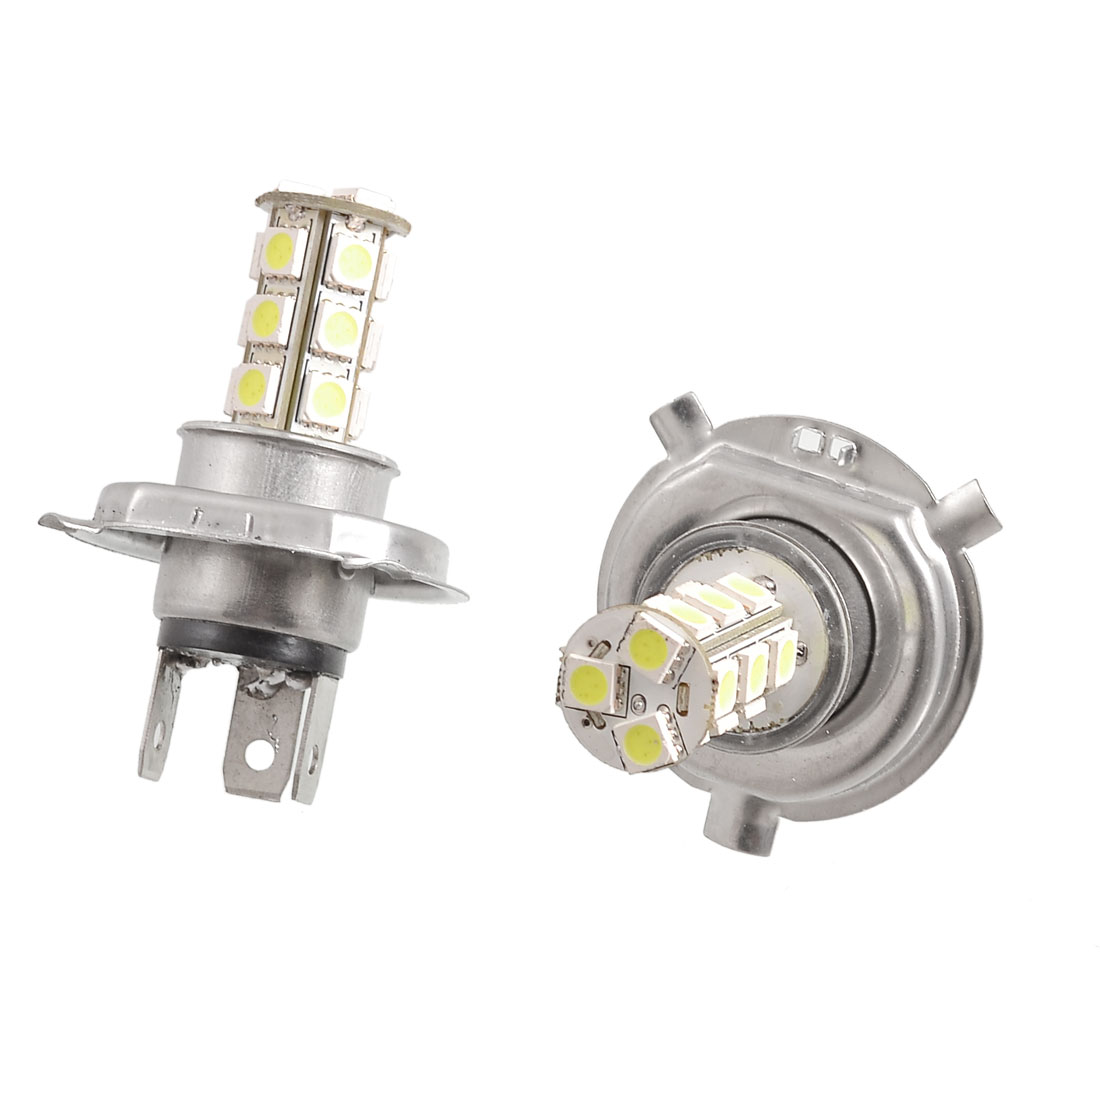 2-Stueck-18-SMD-5050-LED-Nebelscheinwerfer-H4-Lampe-fuer-Auto